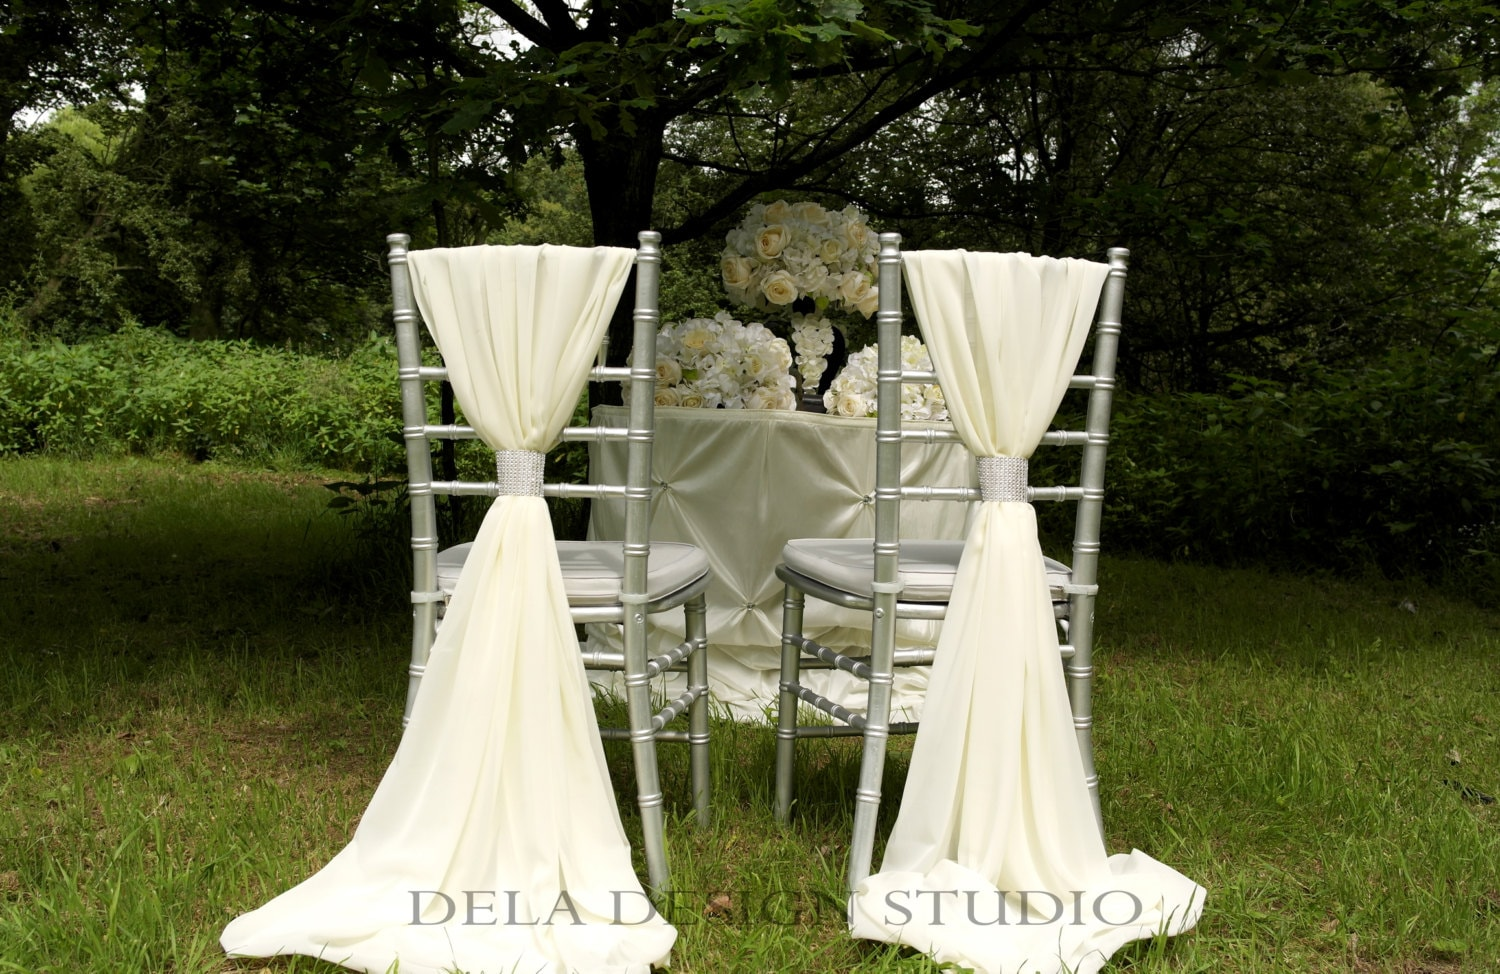 12 x Wedding Chiffon Chair Sash ~ White/Ivory/Cream - Wedding Chair Decor - Chiavari Chair Cover Sash  Chiffon crepe is a beautiful soft material with a subtle